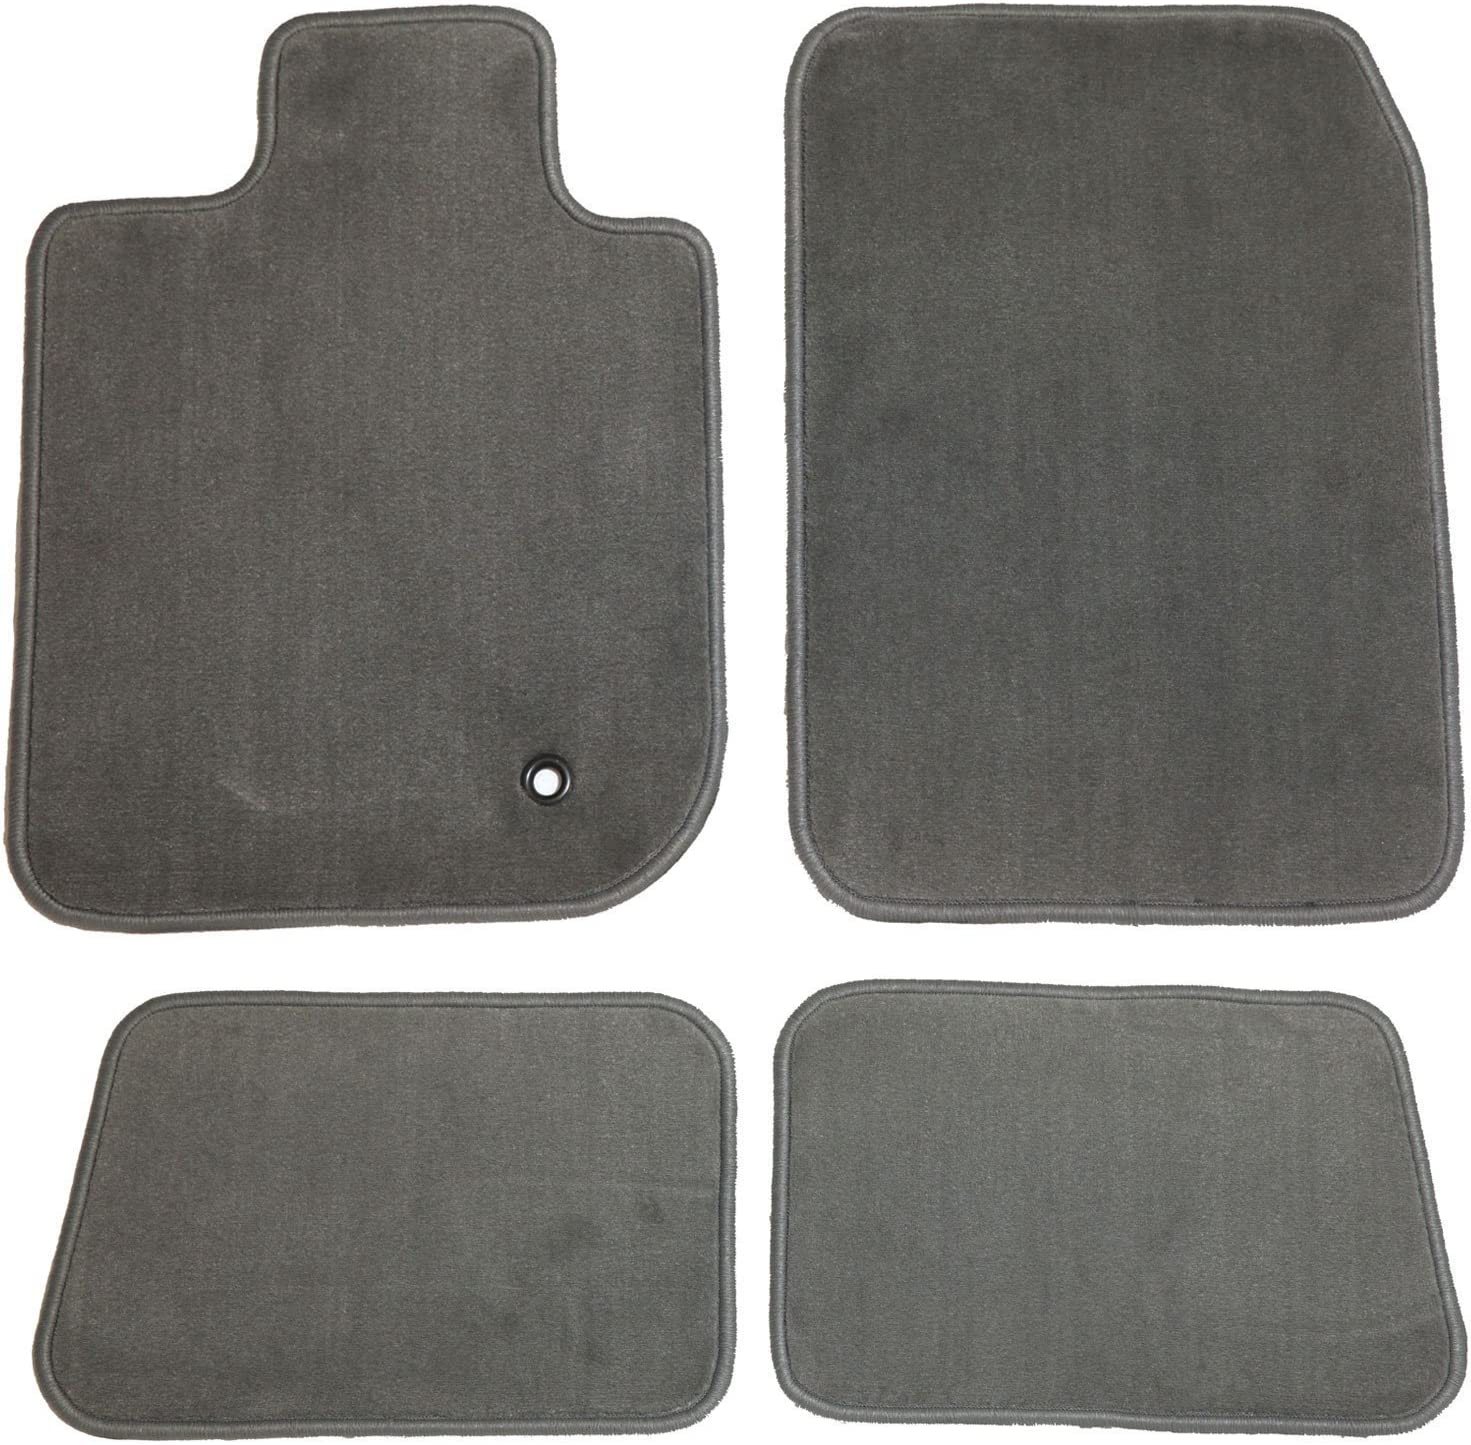 Passenger /& Rear GGBAILEY D4822A-S2B-GY-LP Custom Fit Automotive Carpet Floor Mats for 1999 Land Rover Discovery Grey Loop Driver